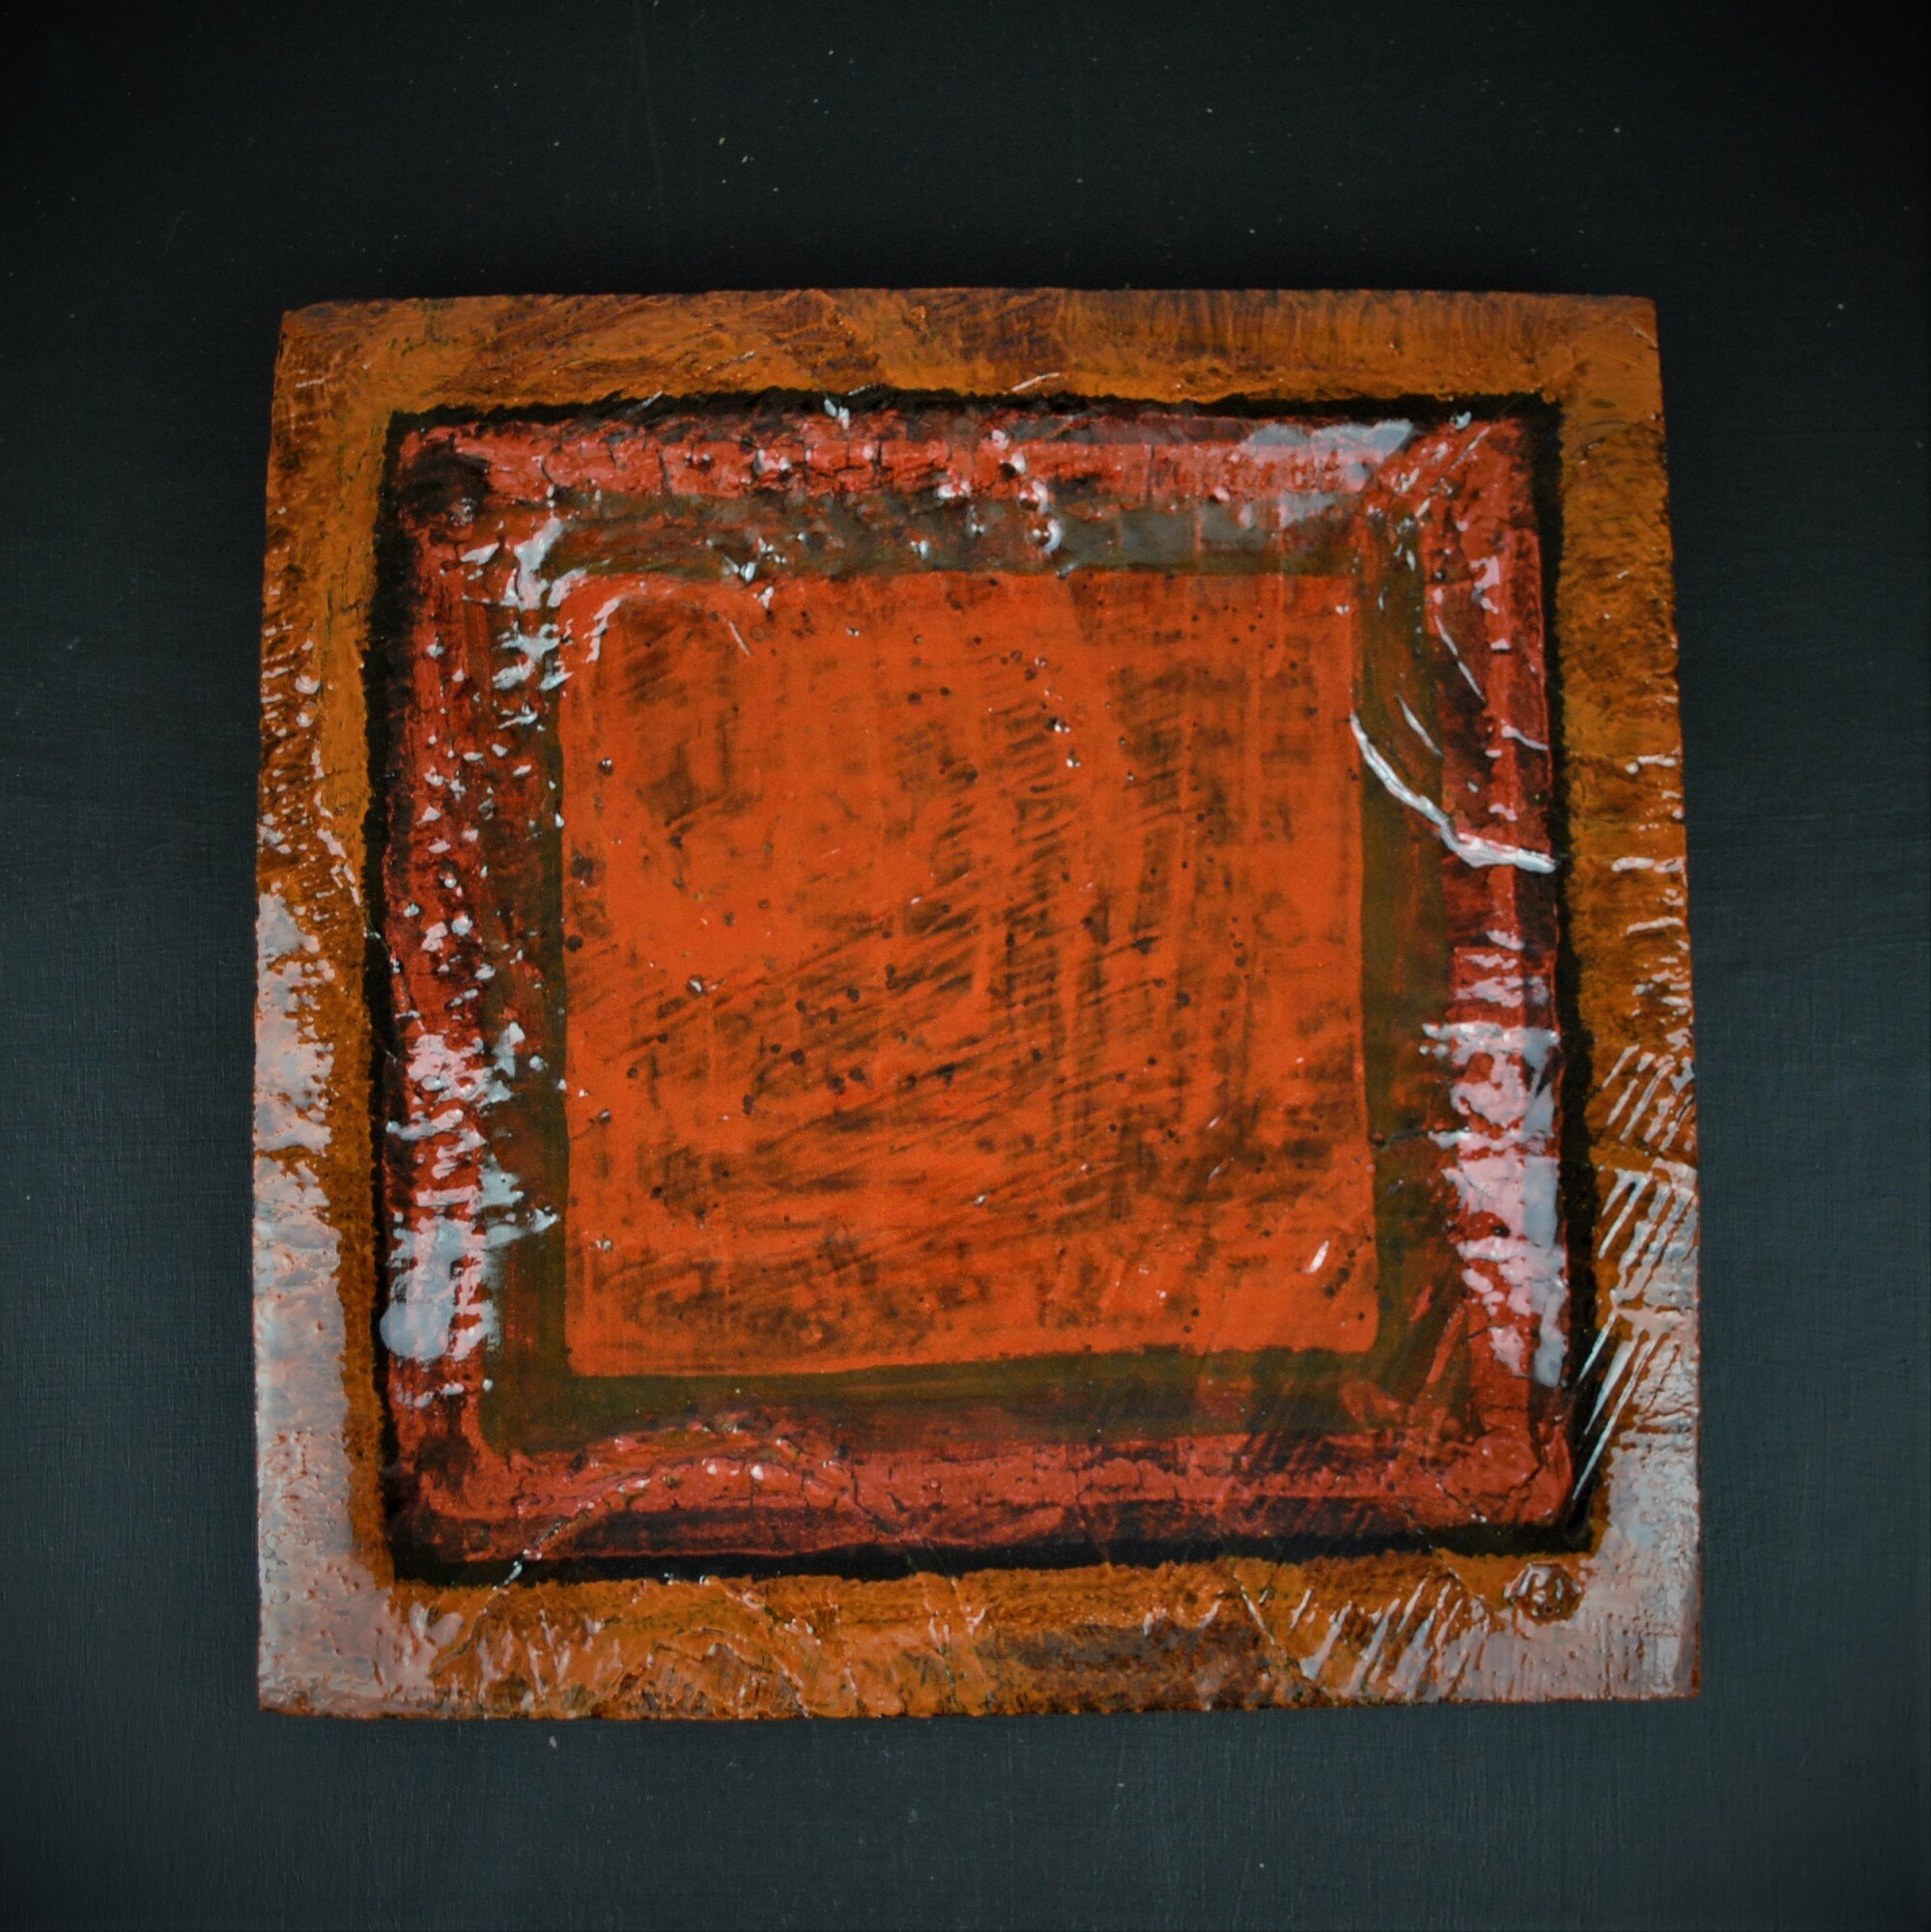 Dave Harper 2018 Orange Squares on black background. (Square edit)DSC_6339 (2).JPG